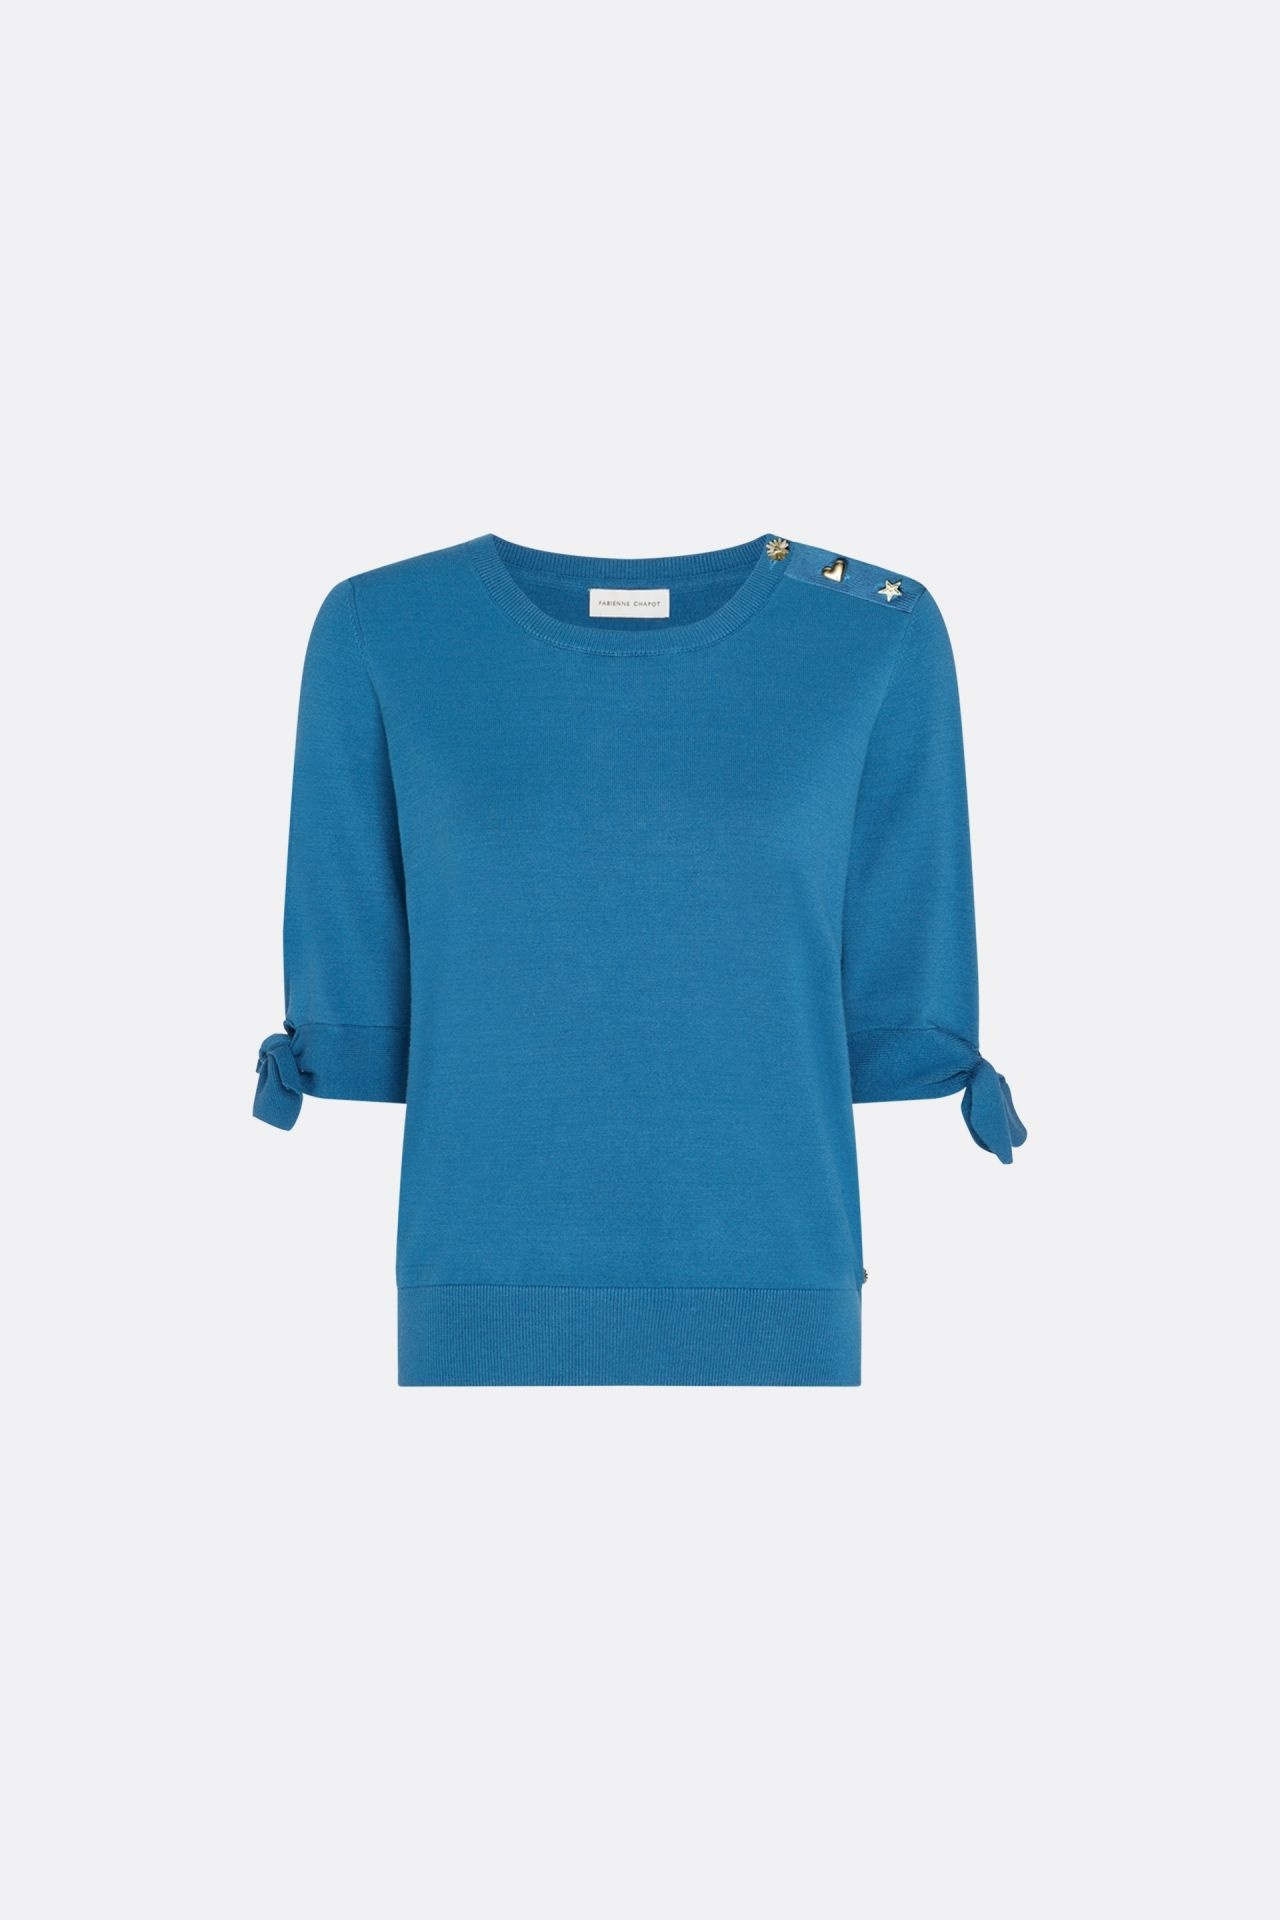 Fabienne Chapot Pullover MOLLY CLT-115-1